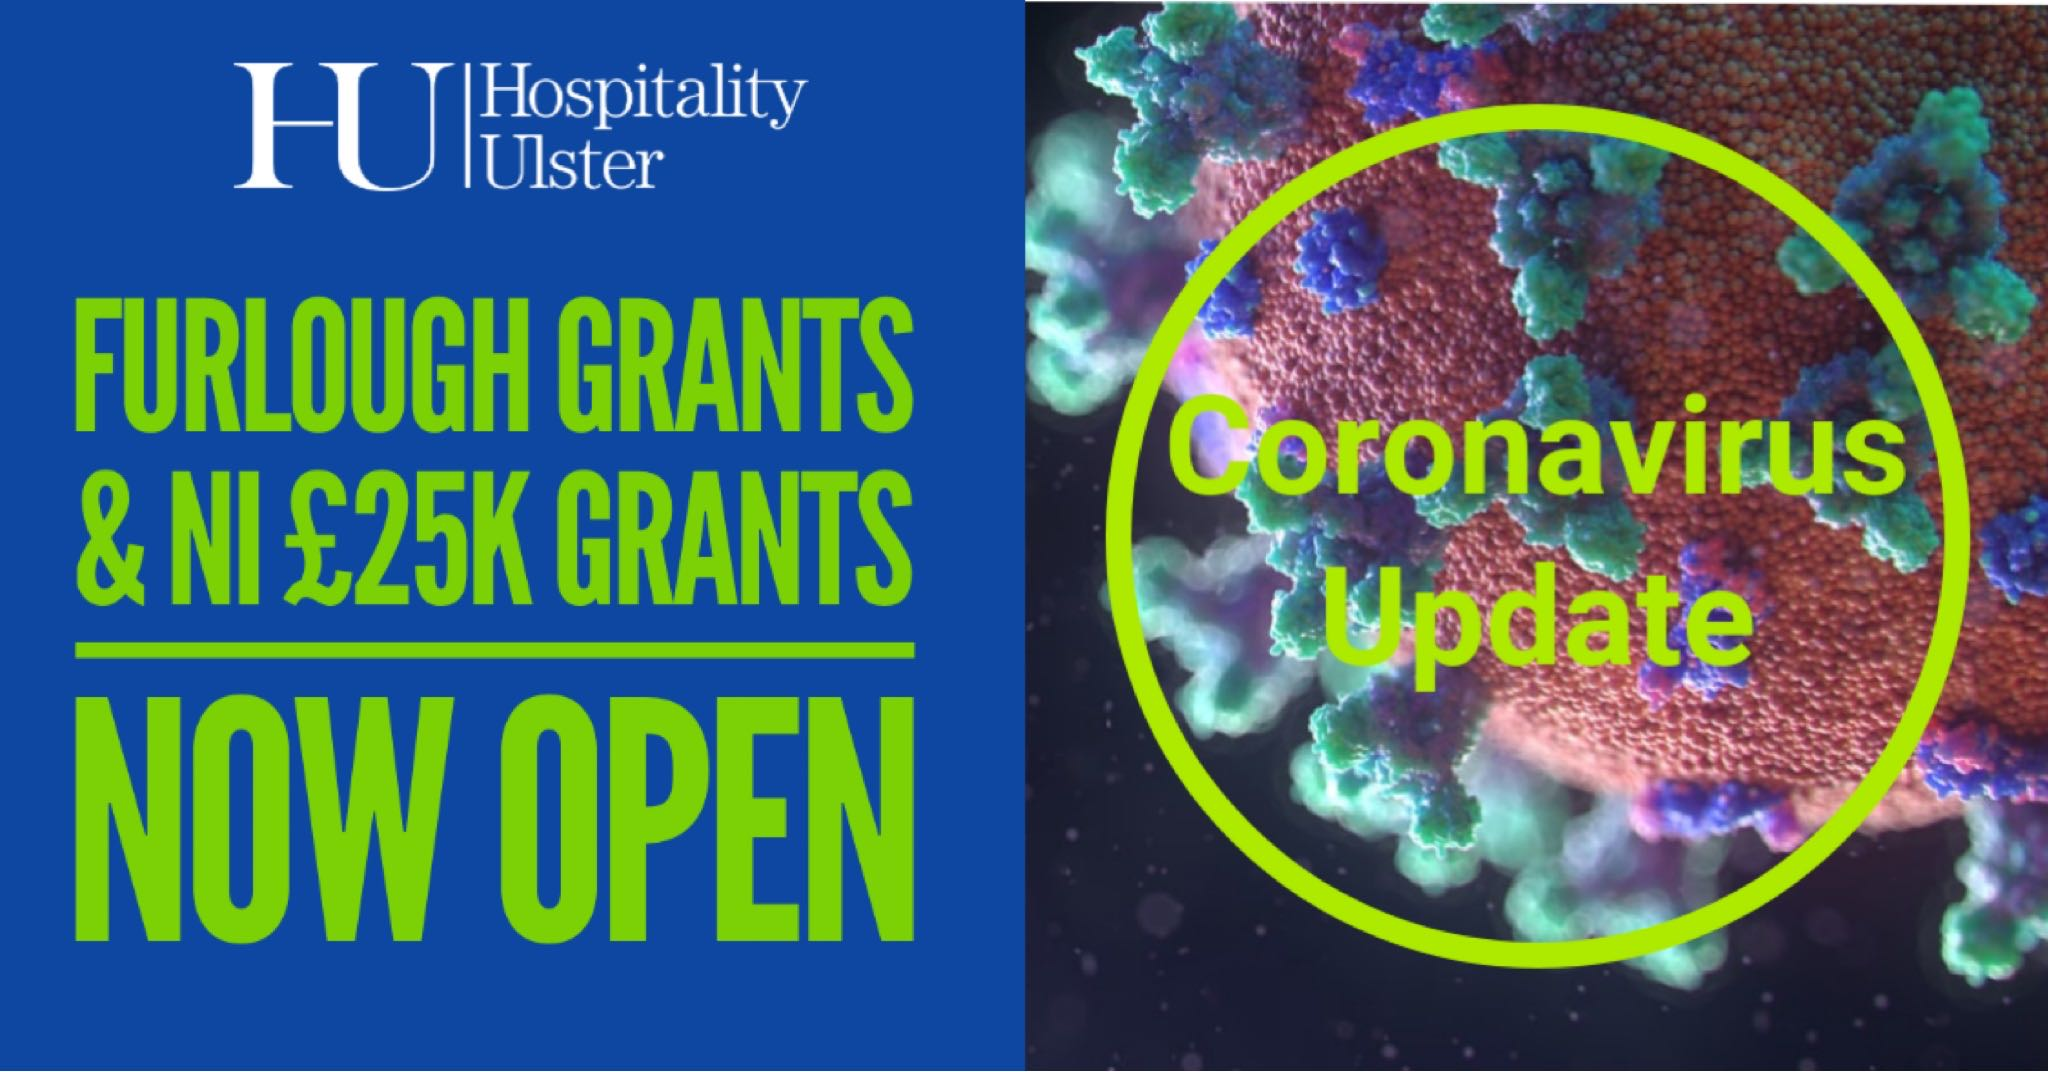 NI 25K GRANTS AND FURLOUGHED GRANTS NOW OPEN